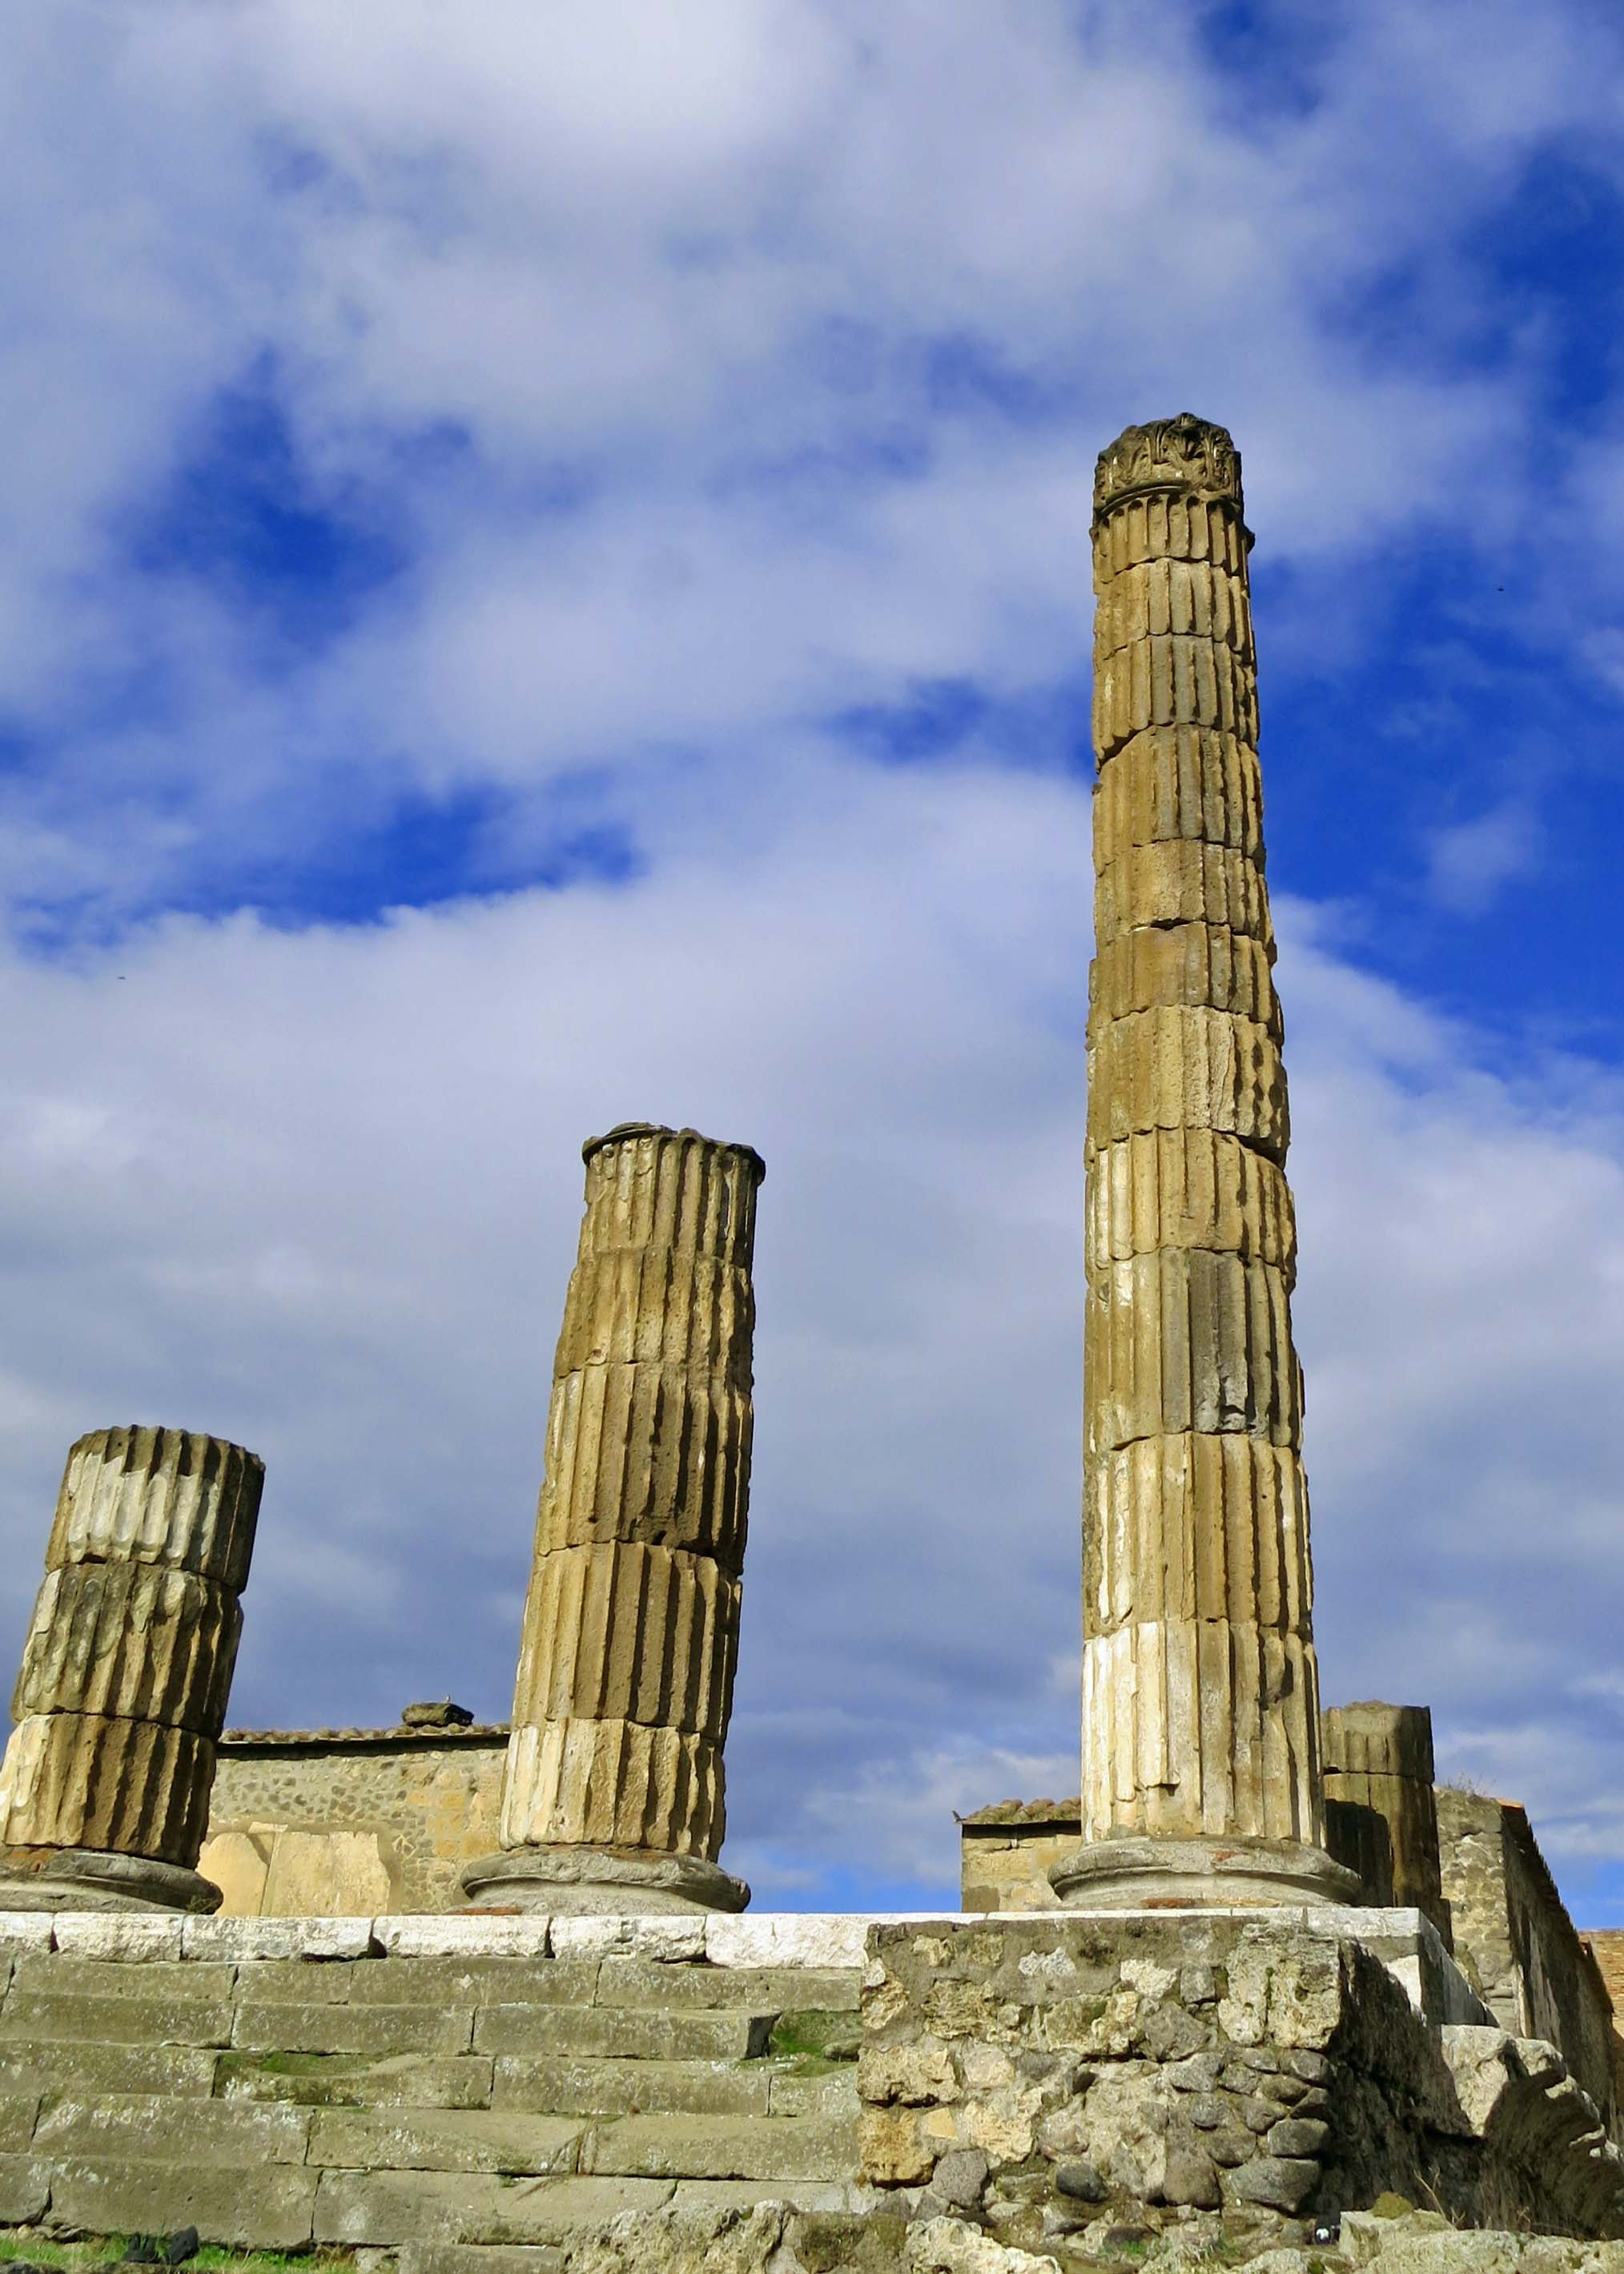 I liked this view of the Temple of Jupiter with it's stair step columns. A massive earthquake had destroyed the temple in 62 AD. It was still being rebuilt in 79 AD when covered by volcanic rock from Mt. Vesuvius.